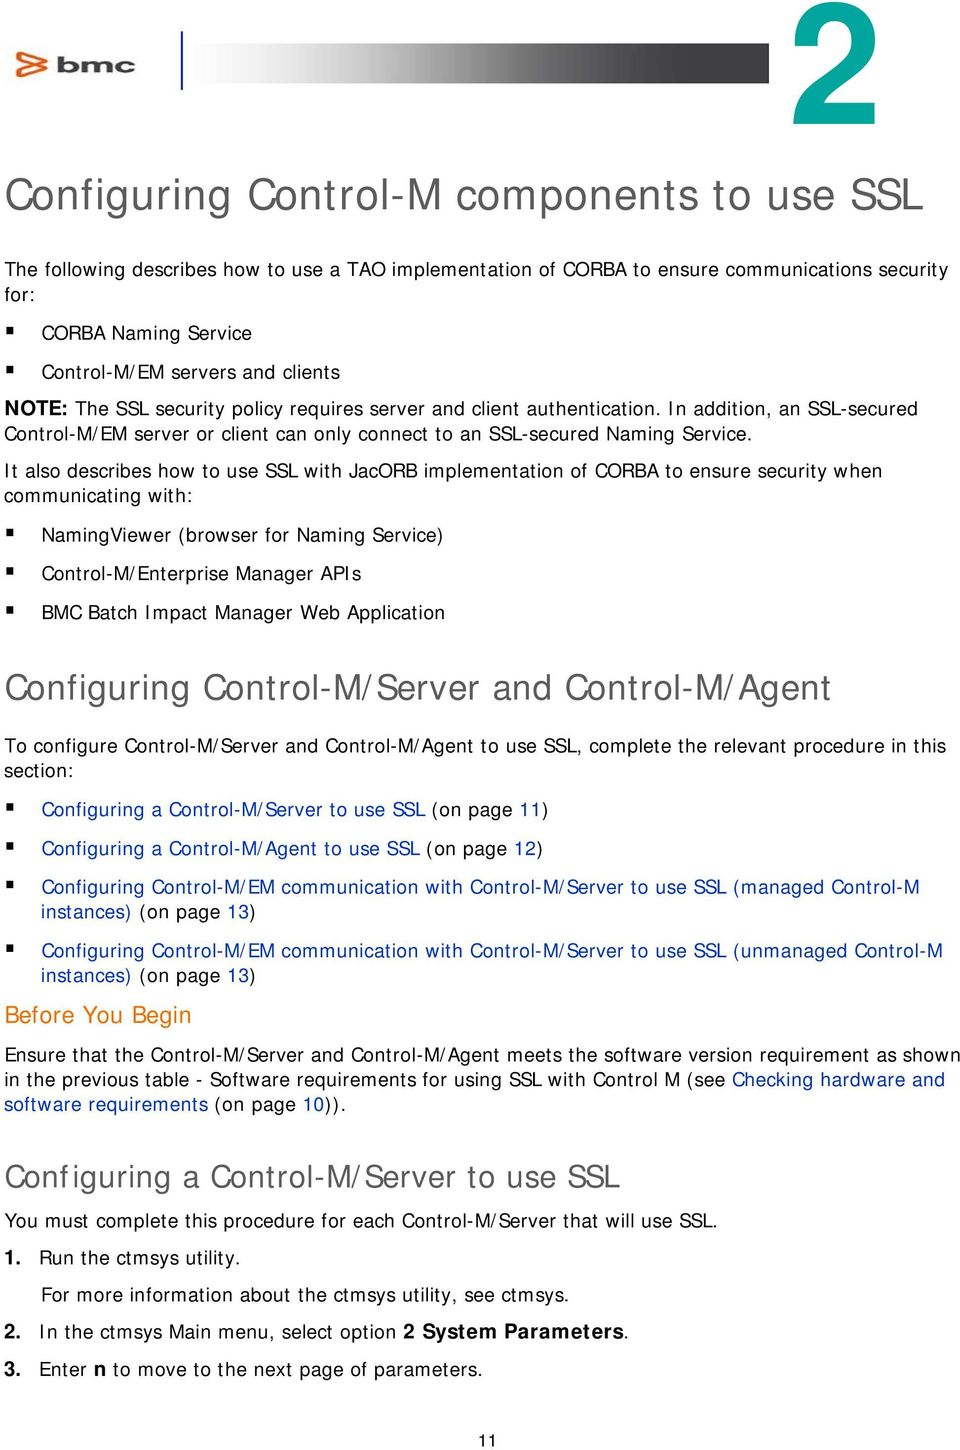 It also describes how to use SSL with JacORB implementation of CORBA to ensure security when communicating with: NamingViewer (browser for Naming Service) Control-M/Enterprise Manager APIs BMC Batch